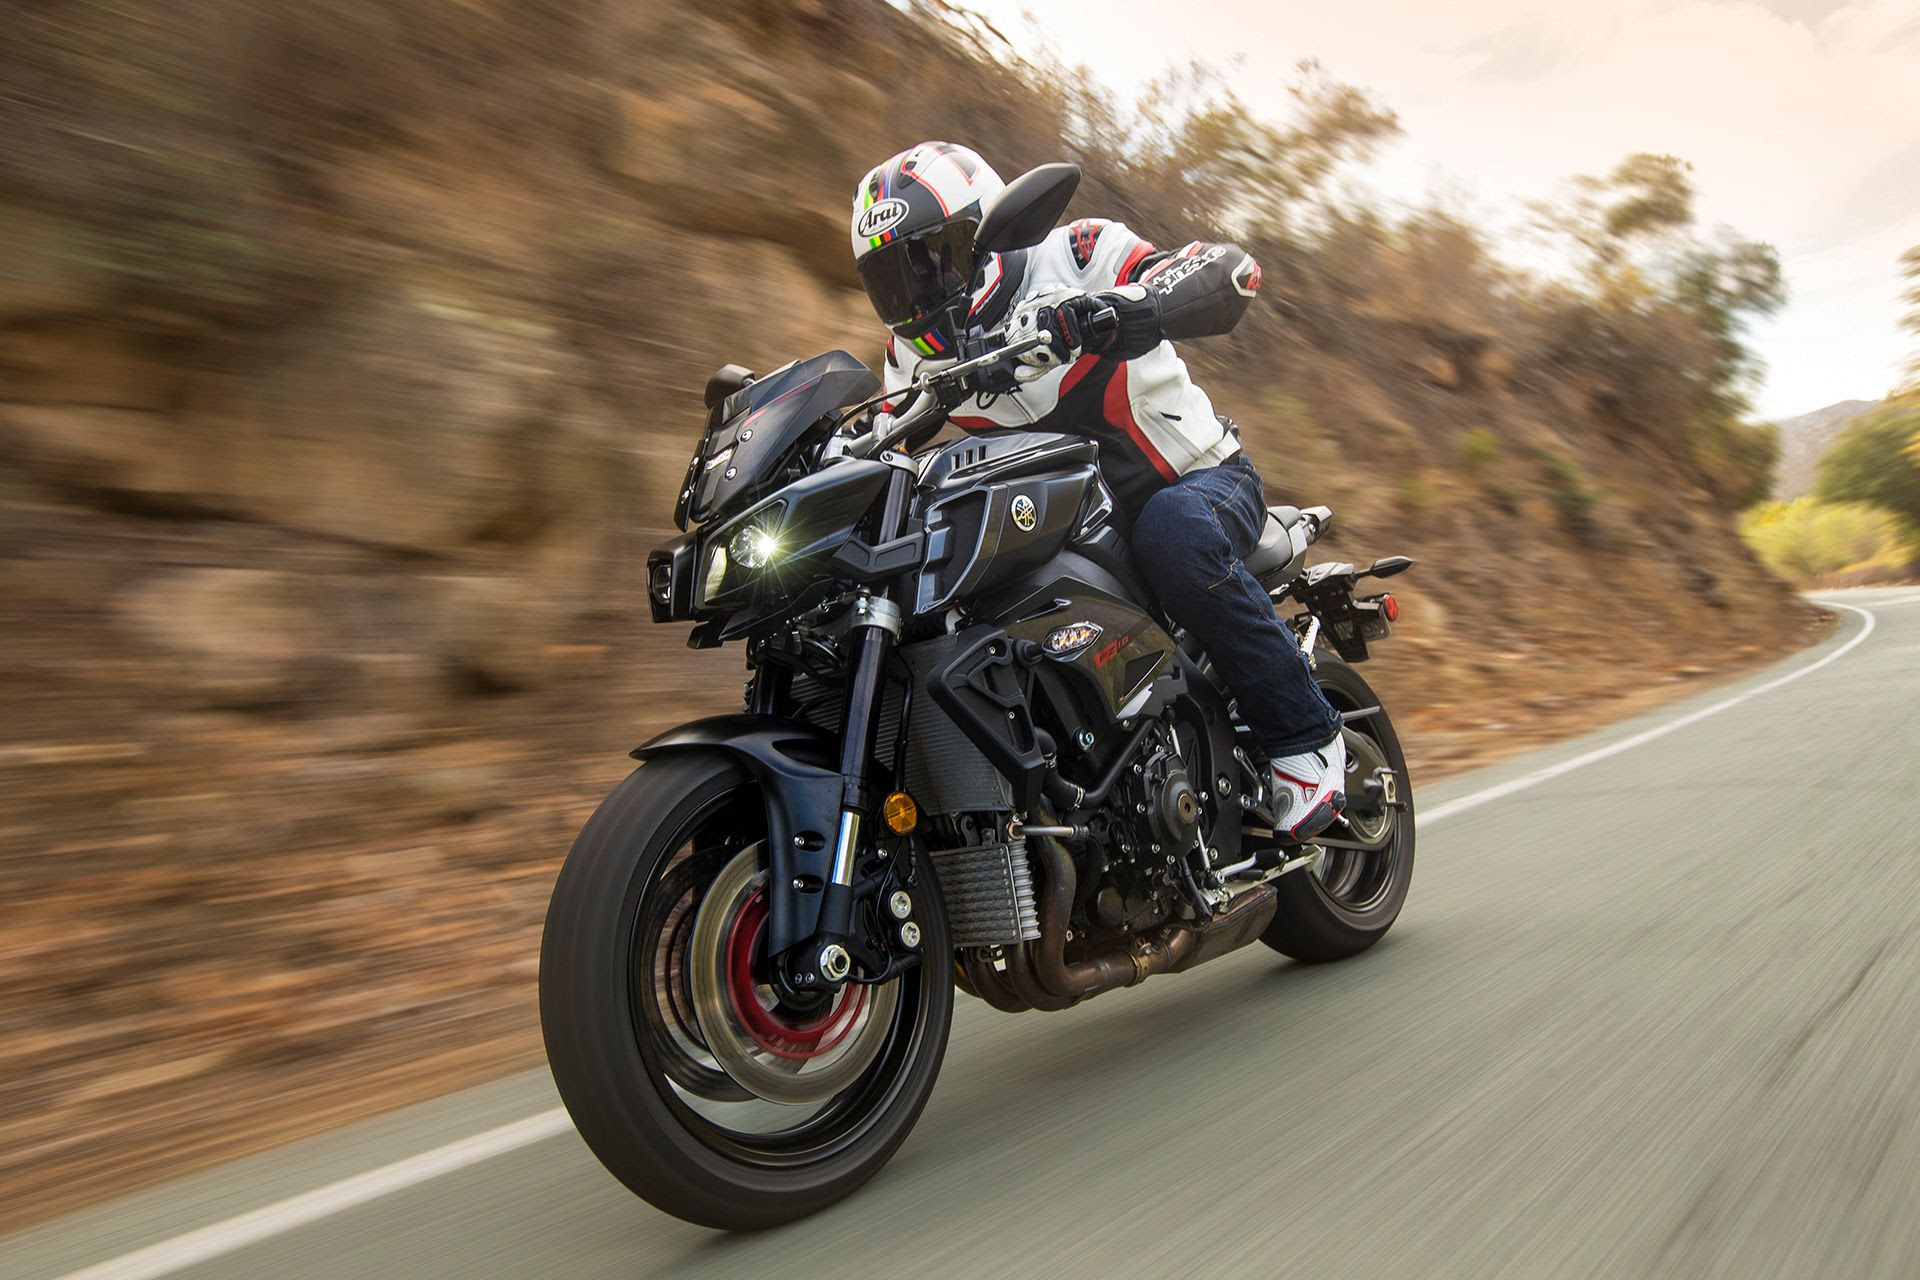 2017 Yamaha Fz 10 Naked Bike Road Test Review Cycle World